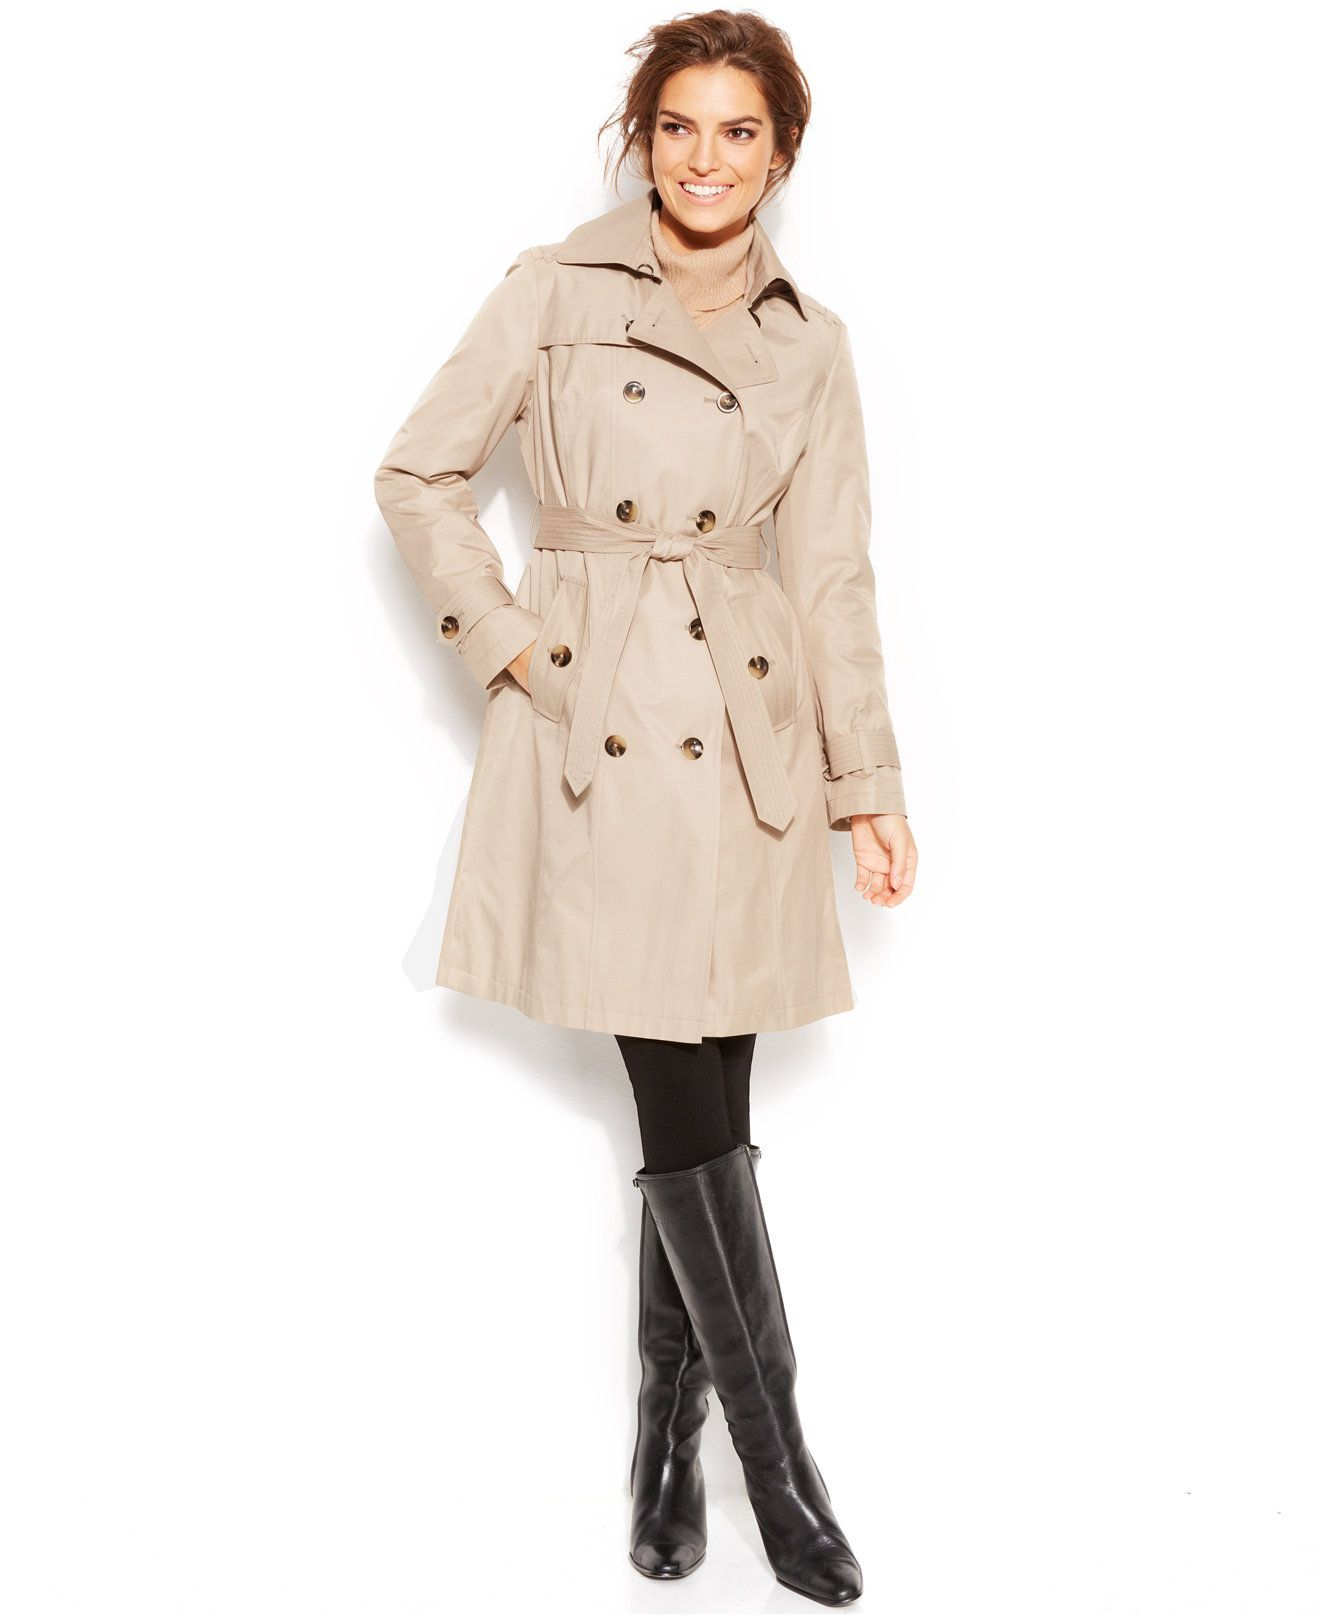 7452a922b London Fog Belted Trench Coat - Coats - Women - Macy's; THIS IS FOR ...